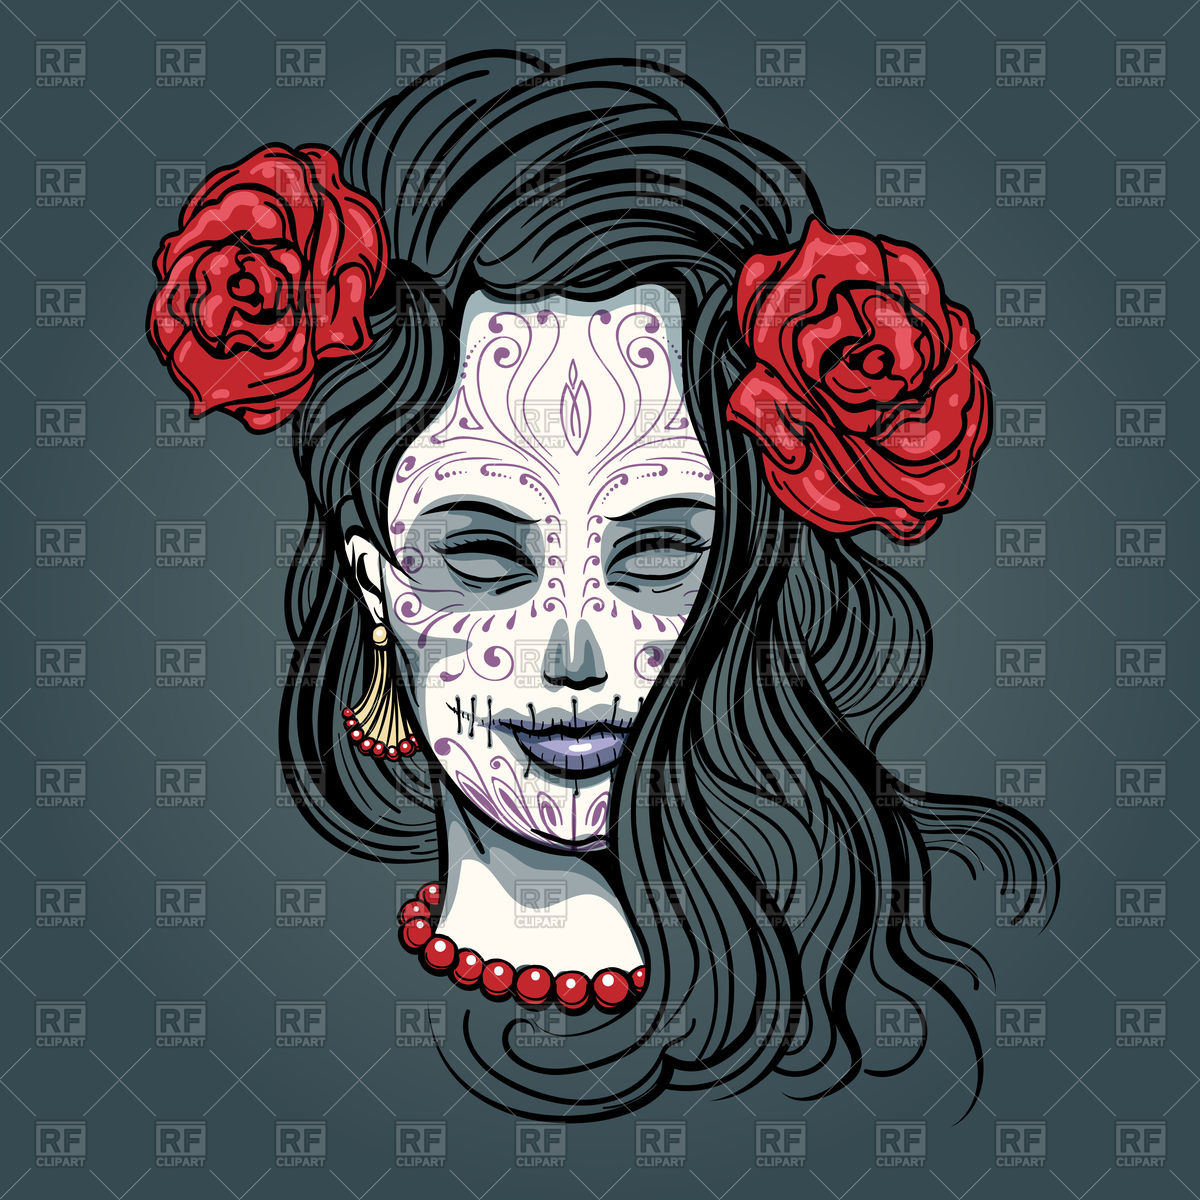 Day of the dead, girl face with sugar skull makeup Vector Image.